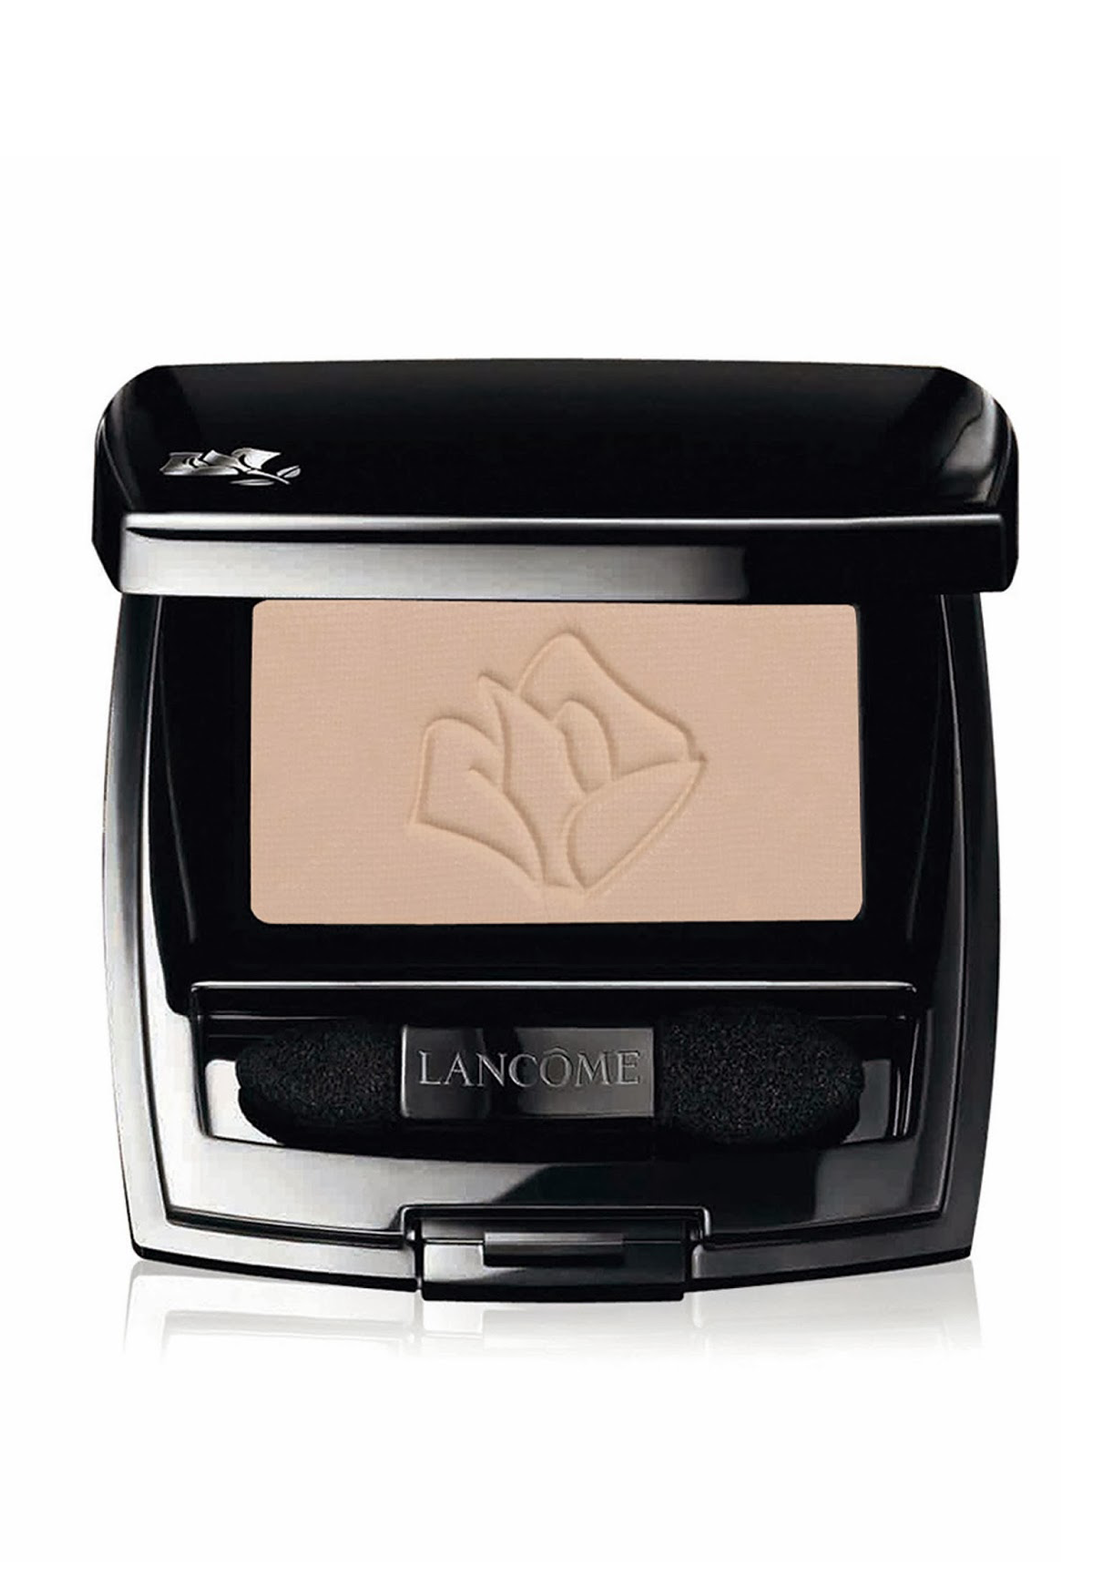 Lancome Ombre Hypnose Matte Colour High Fidelity Eyeshadow, Beige Nu M102